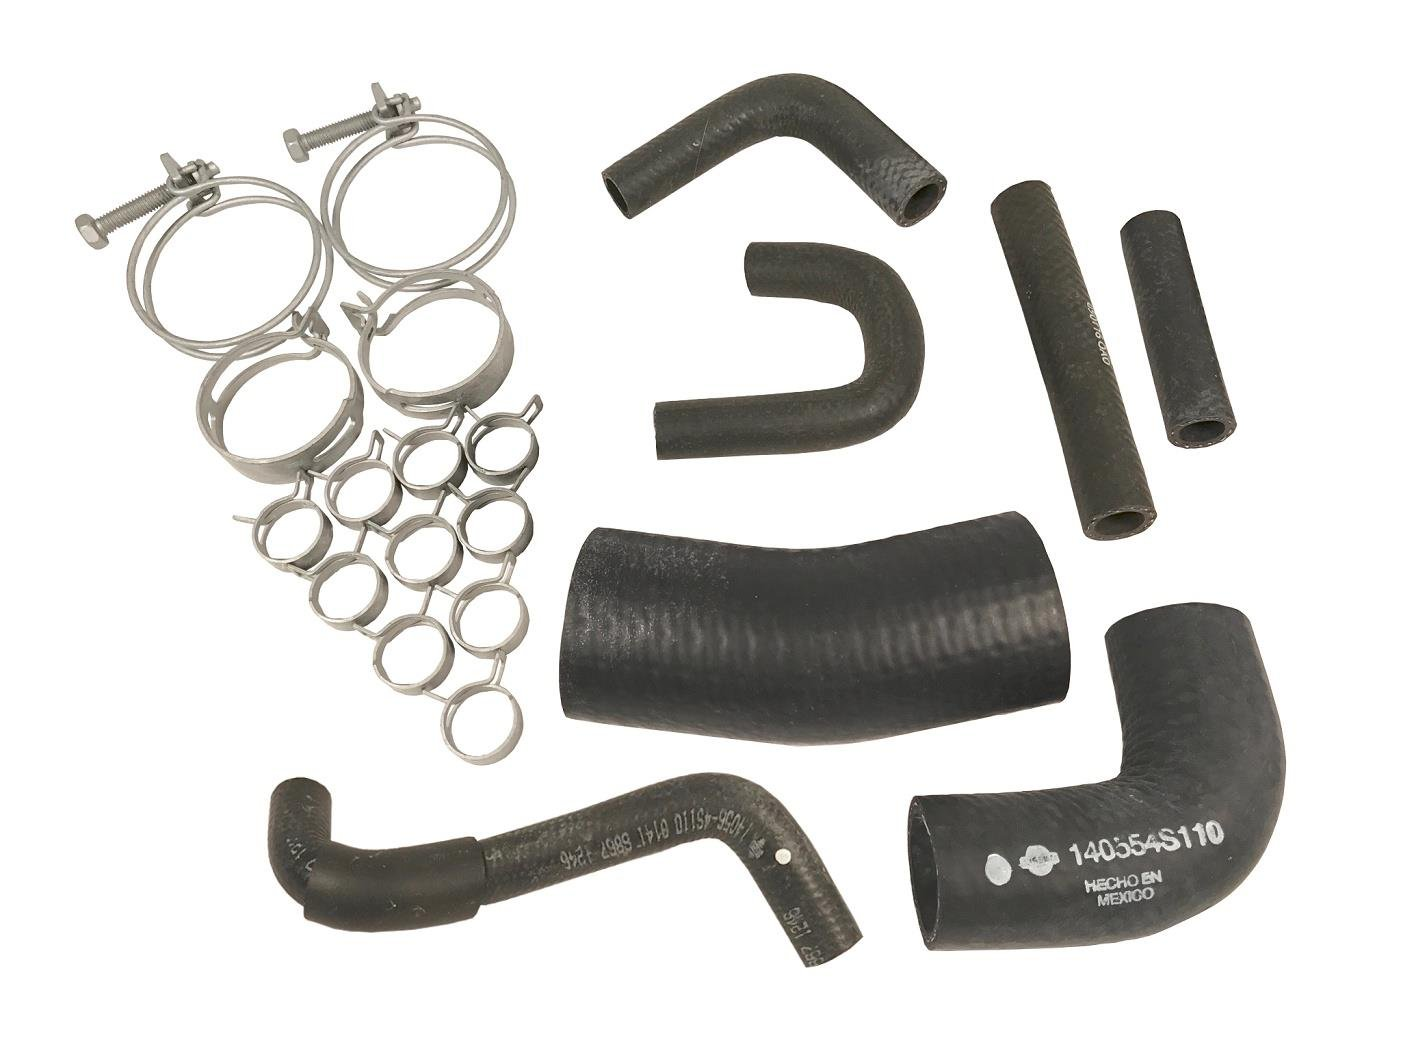 Genuine Nissan OEM Water Hose Replacement Kit 2001 Frontier/Xterra (3.3 V6)